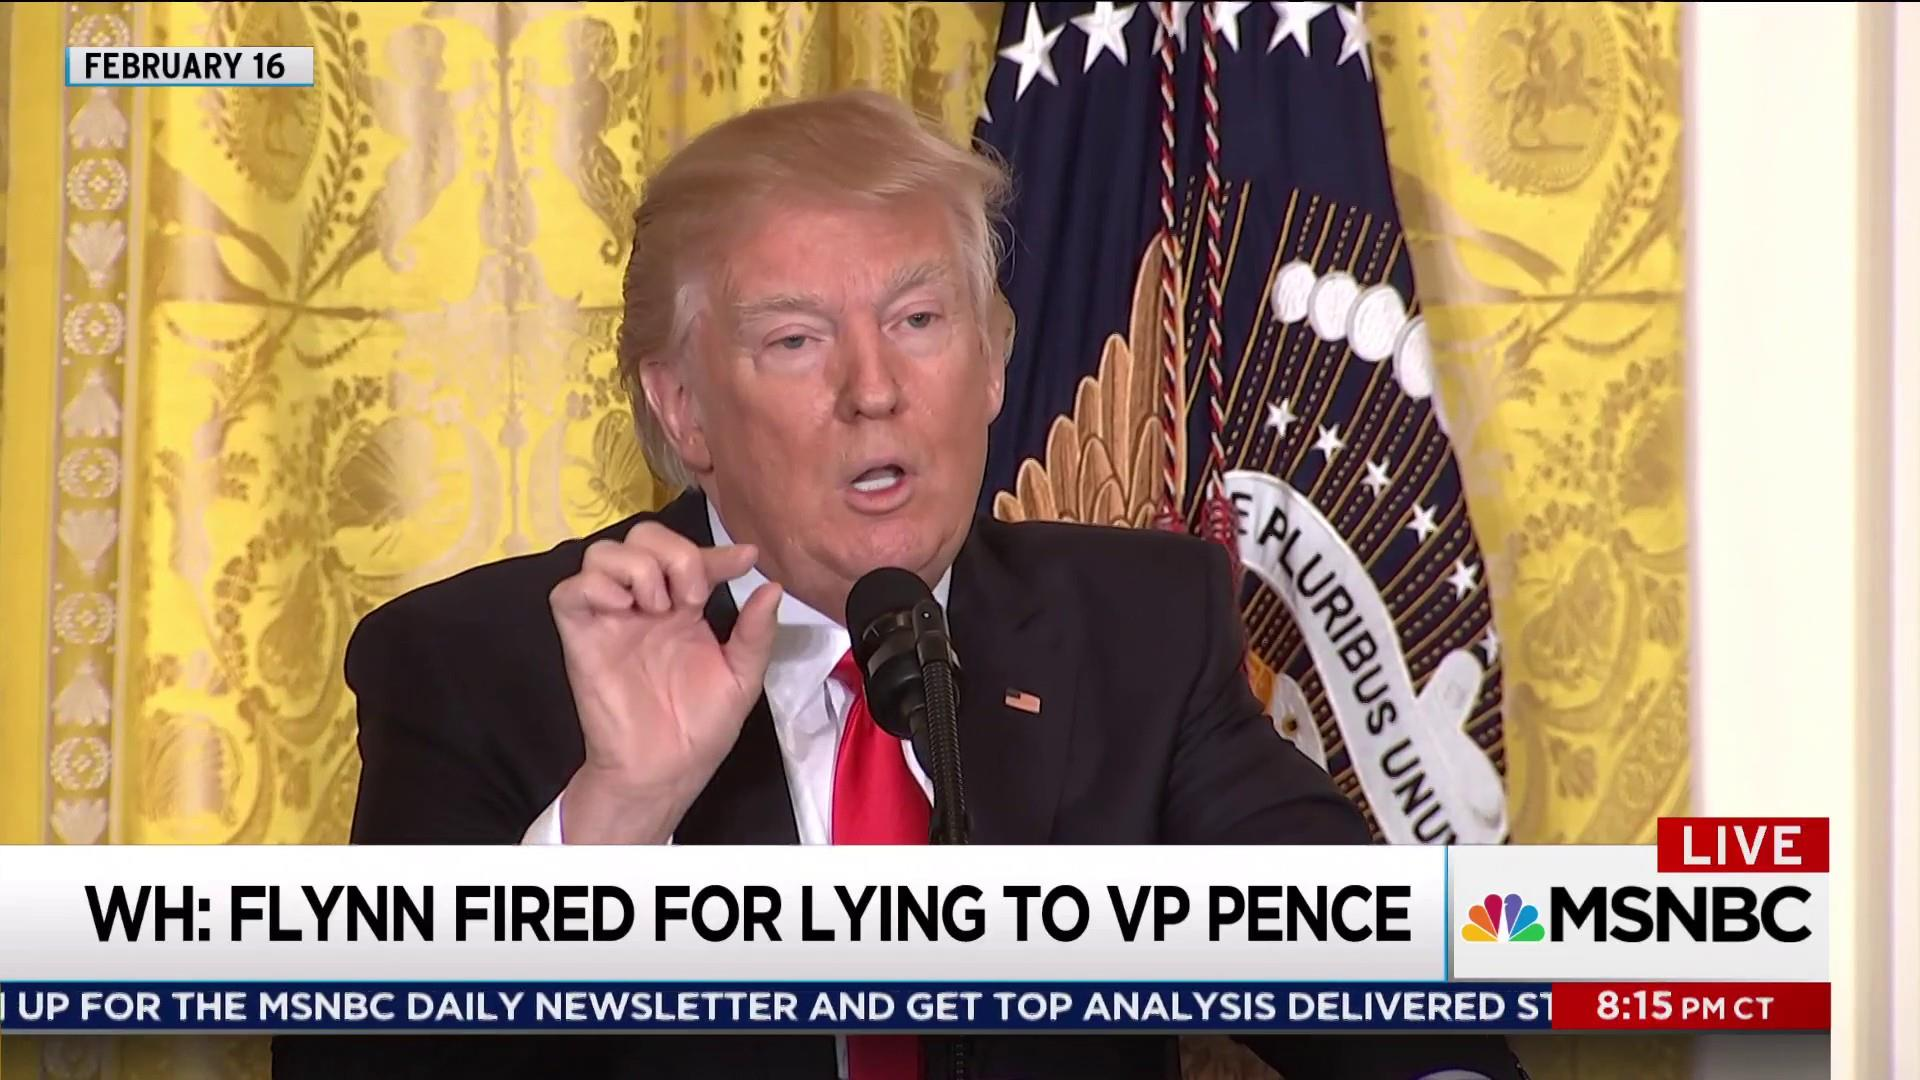 When did Donald Trump know that Flynn lied?